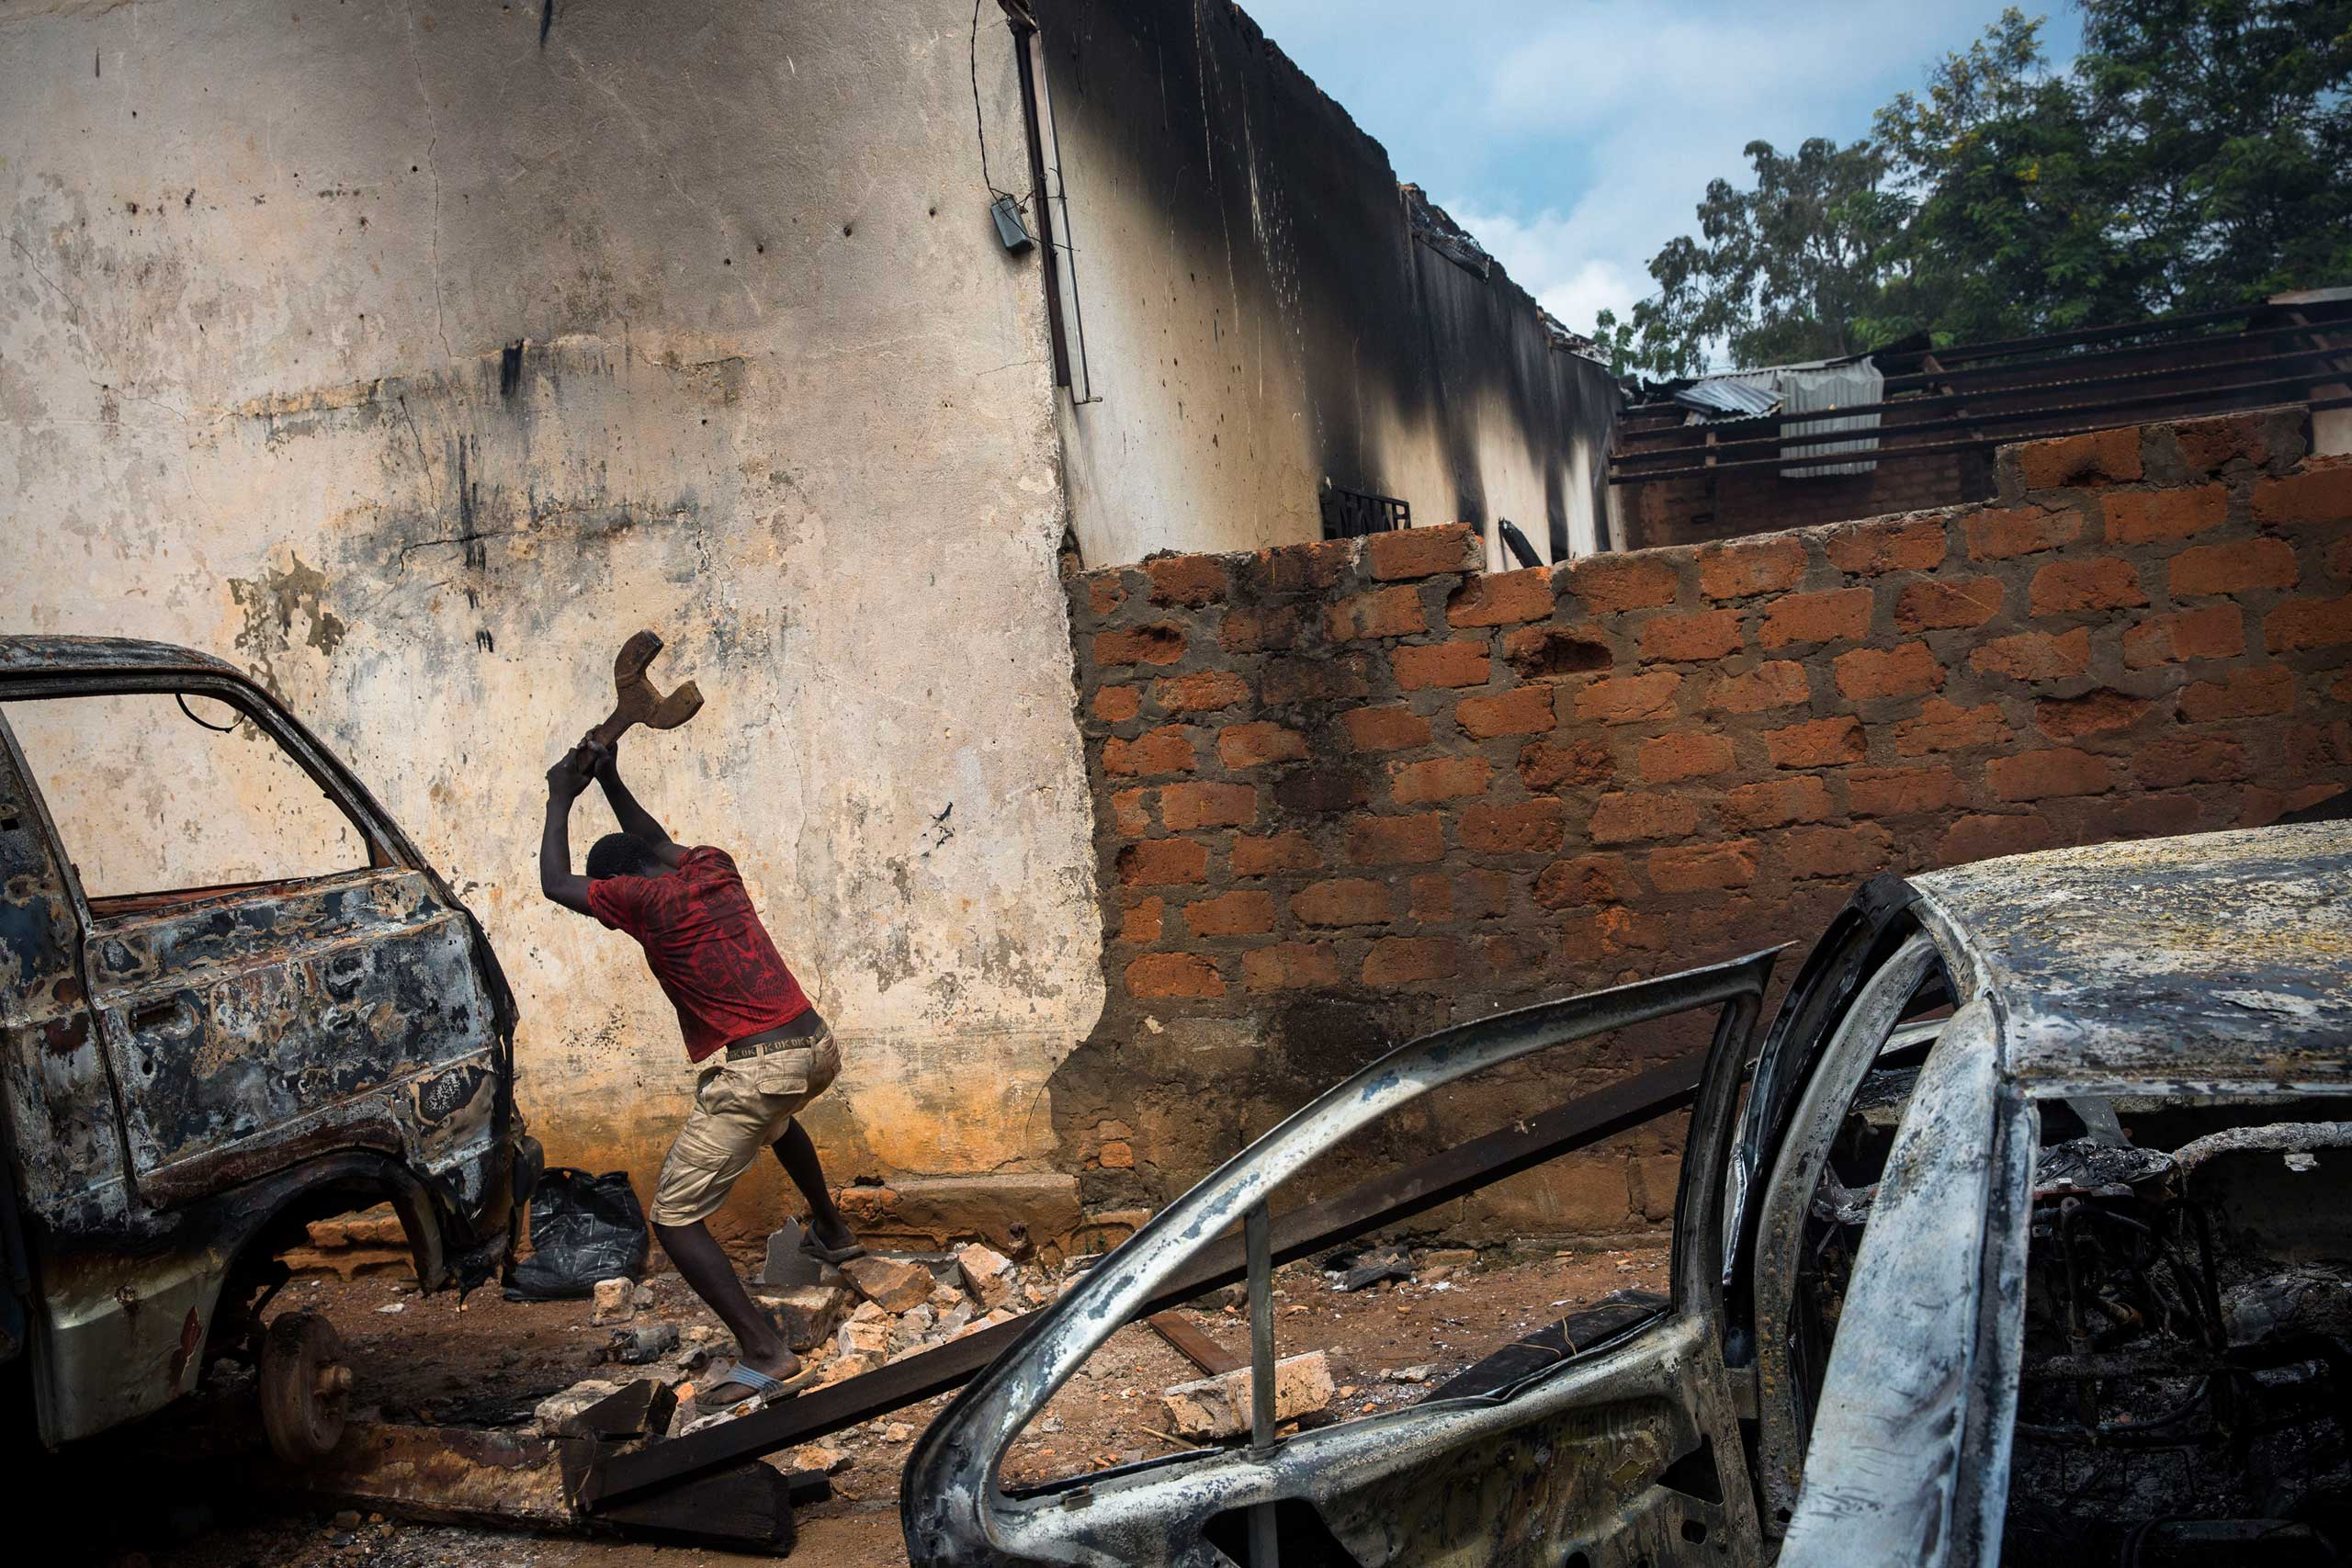 Dec. 10, 2013: A Christian man destroying burnt out cars in rage, next to a looted mosque that had been set on fire in Bangui.